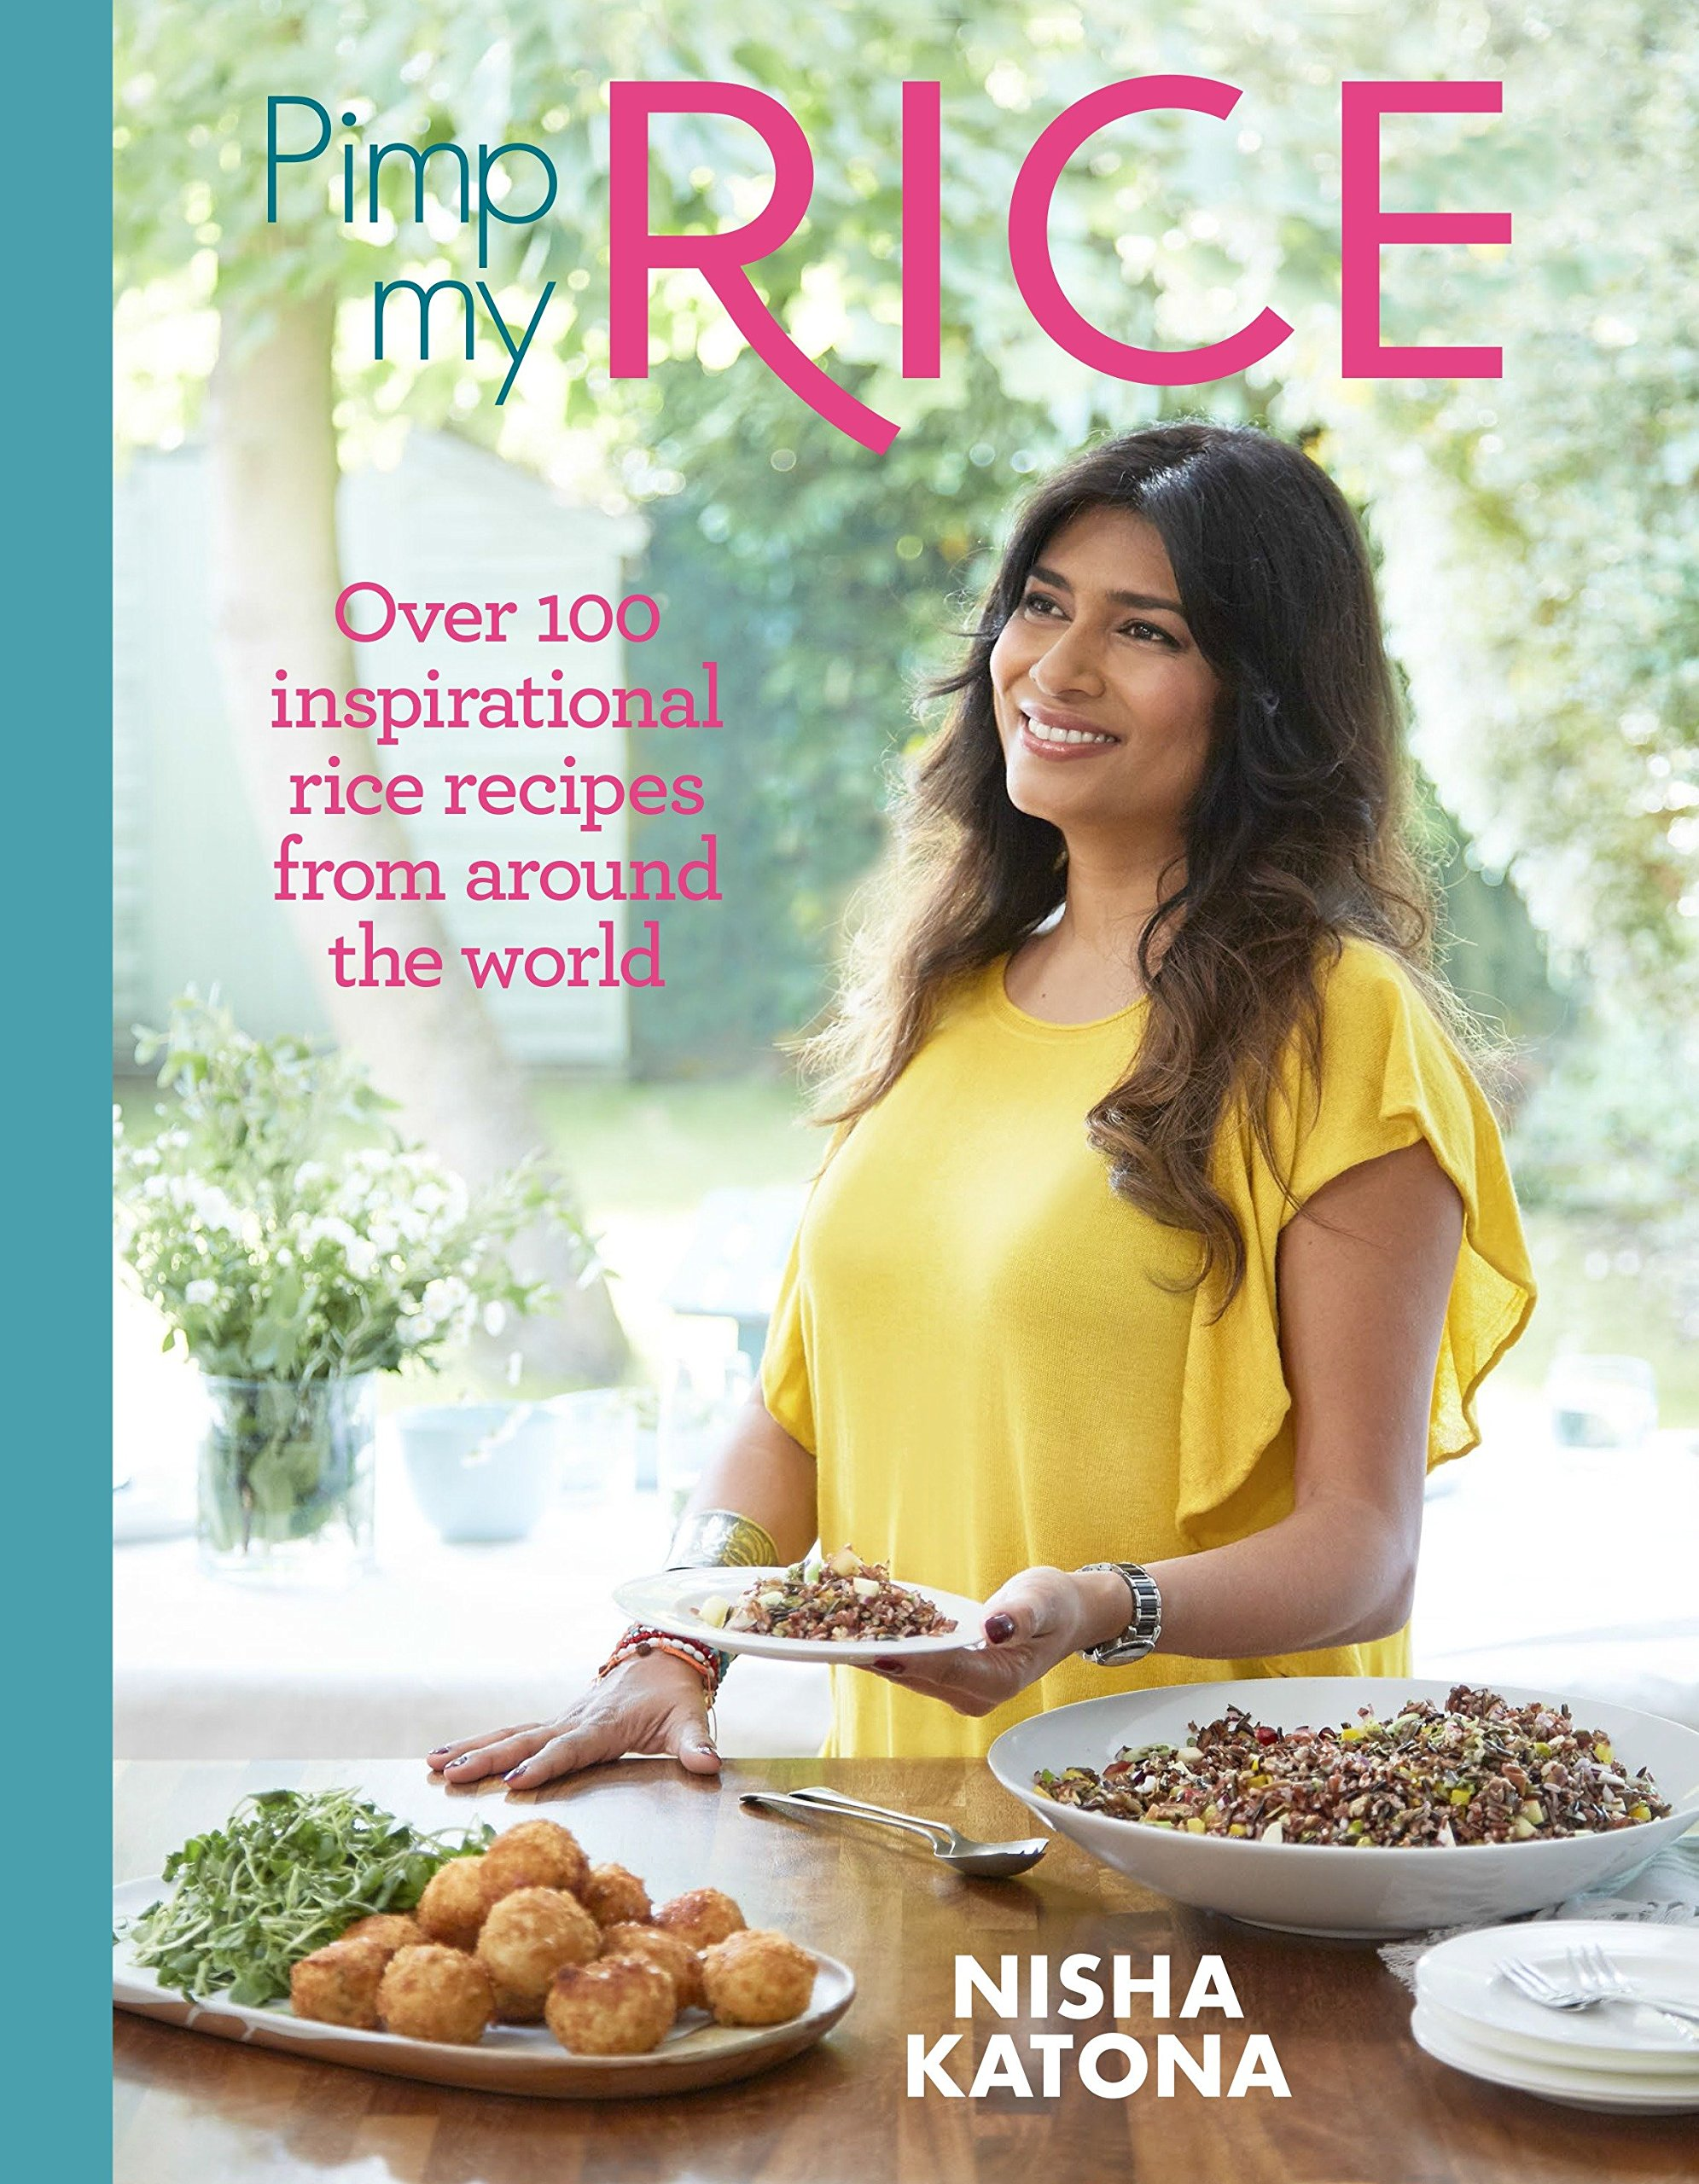 Pimp My Rice: Over 100 inspirational rice recipes from